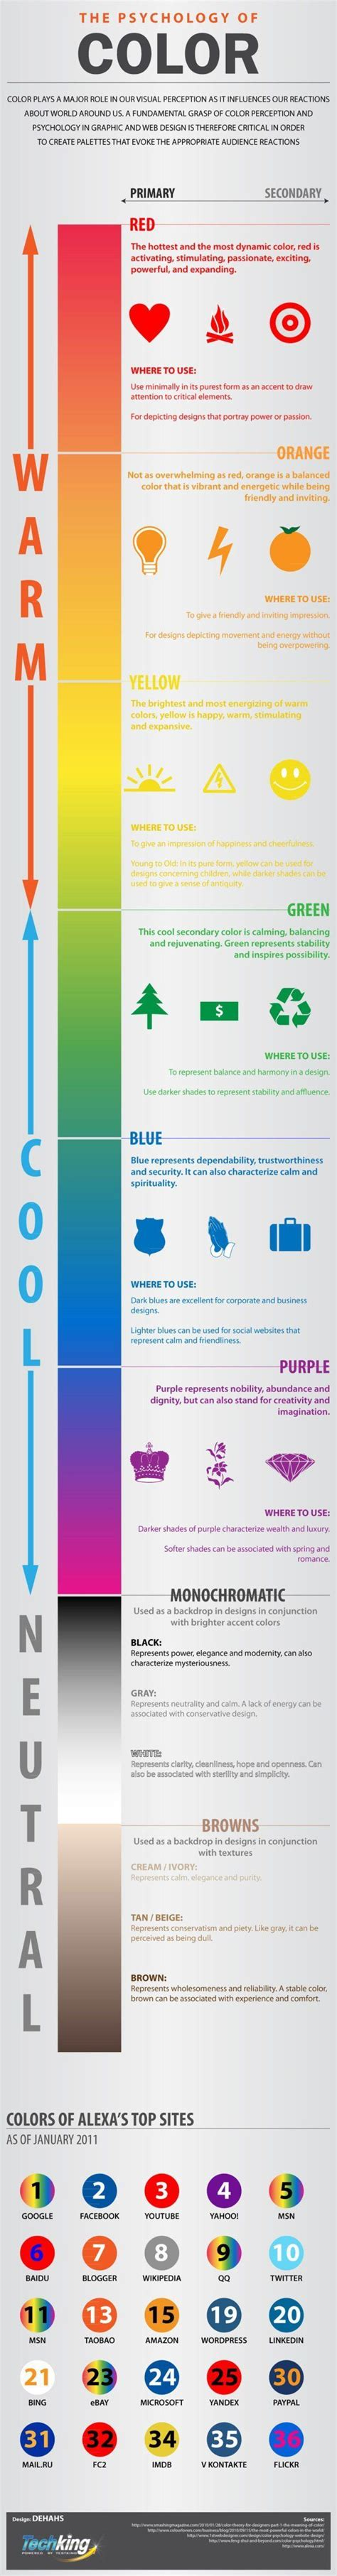 25 best ideas about psychology of color on pinterest 513 best images about elements of art color lessons on